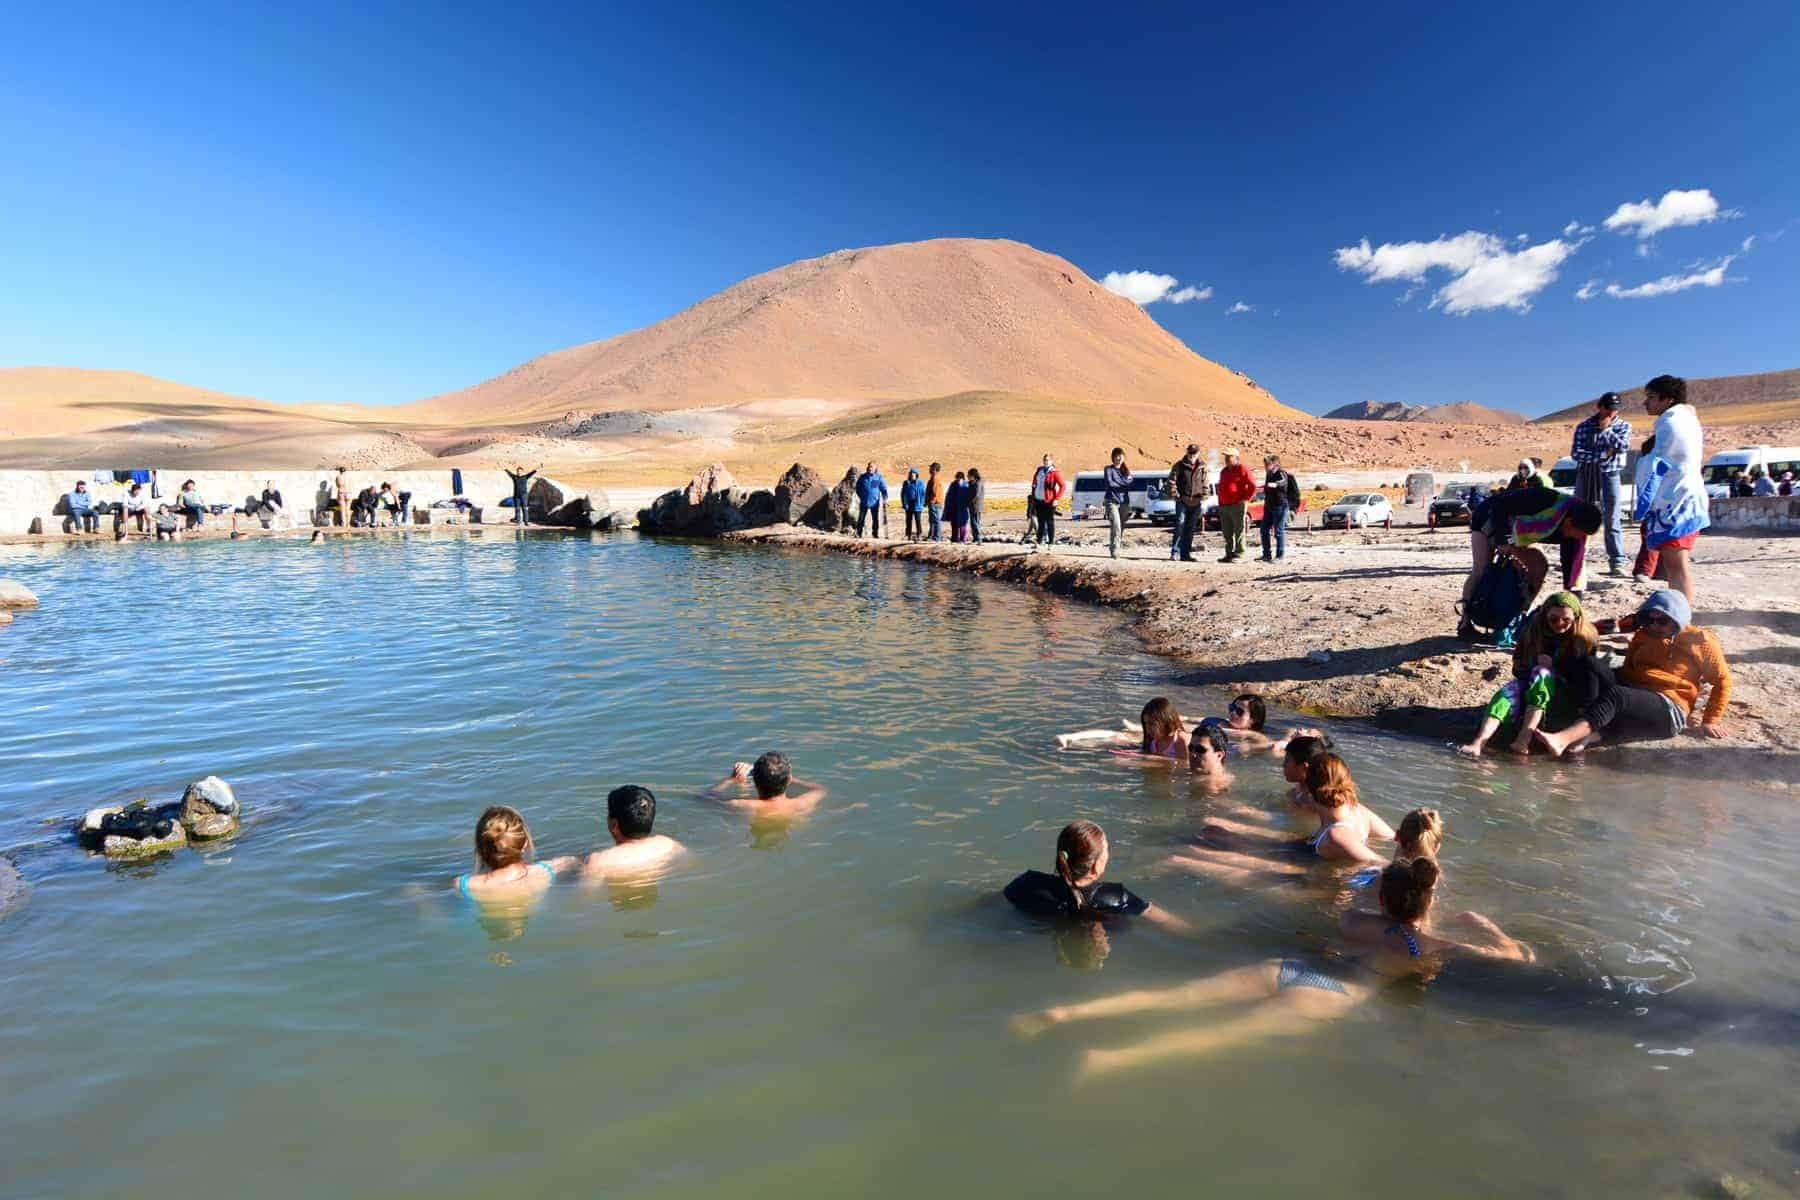 El Tatio is a geyser field located within the Andes Mountains of northern Chile at 4,320 meters above mean sea level